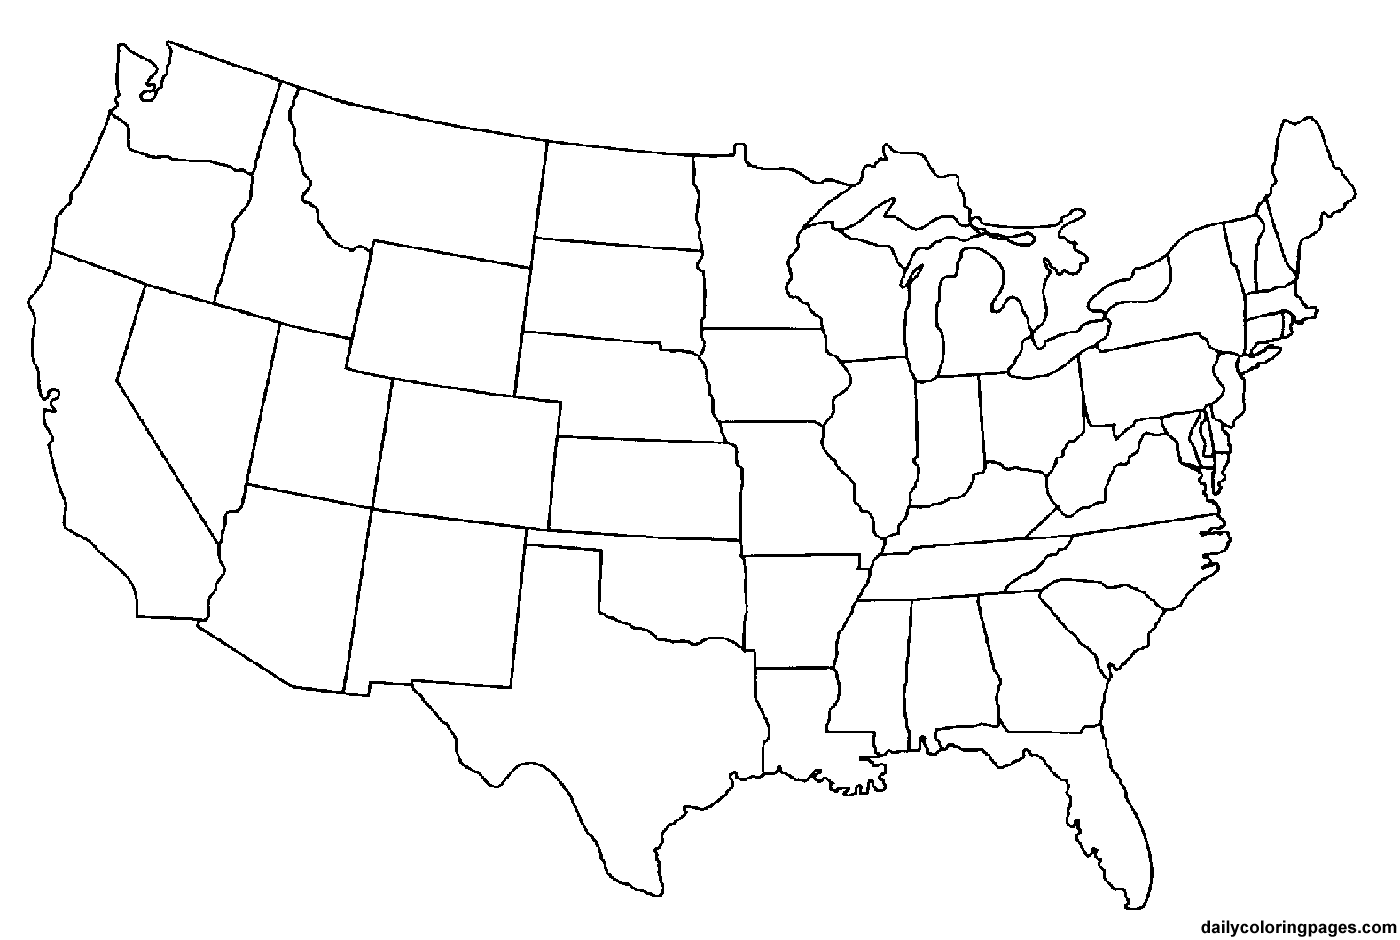 It's just a photo of Handy Blank Usa Map Printable